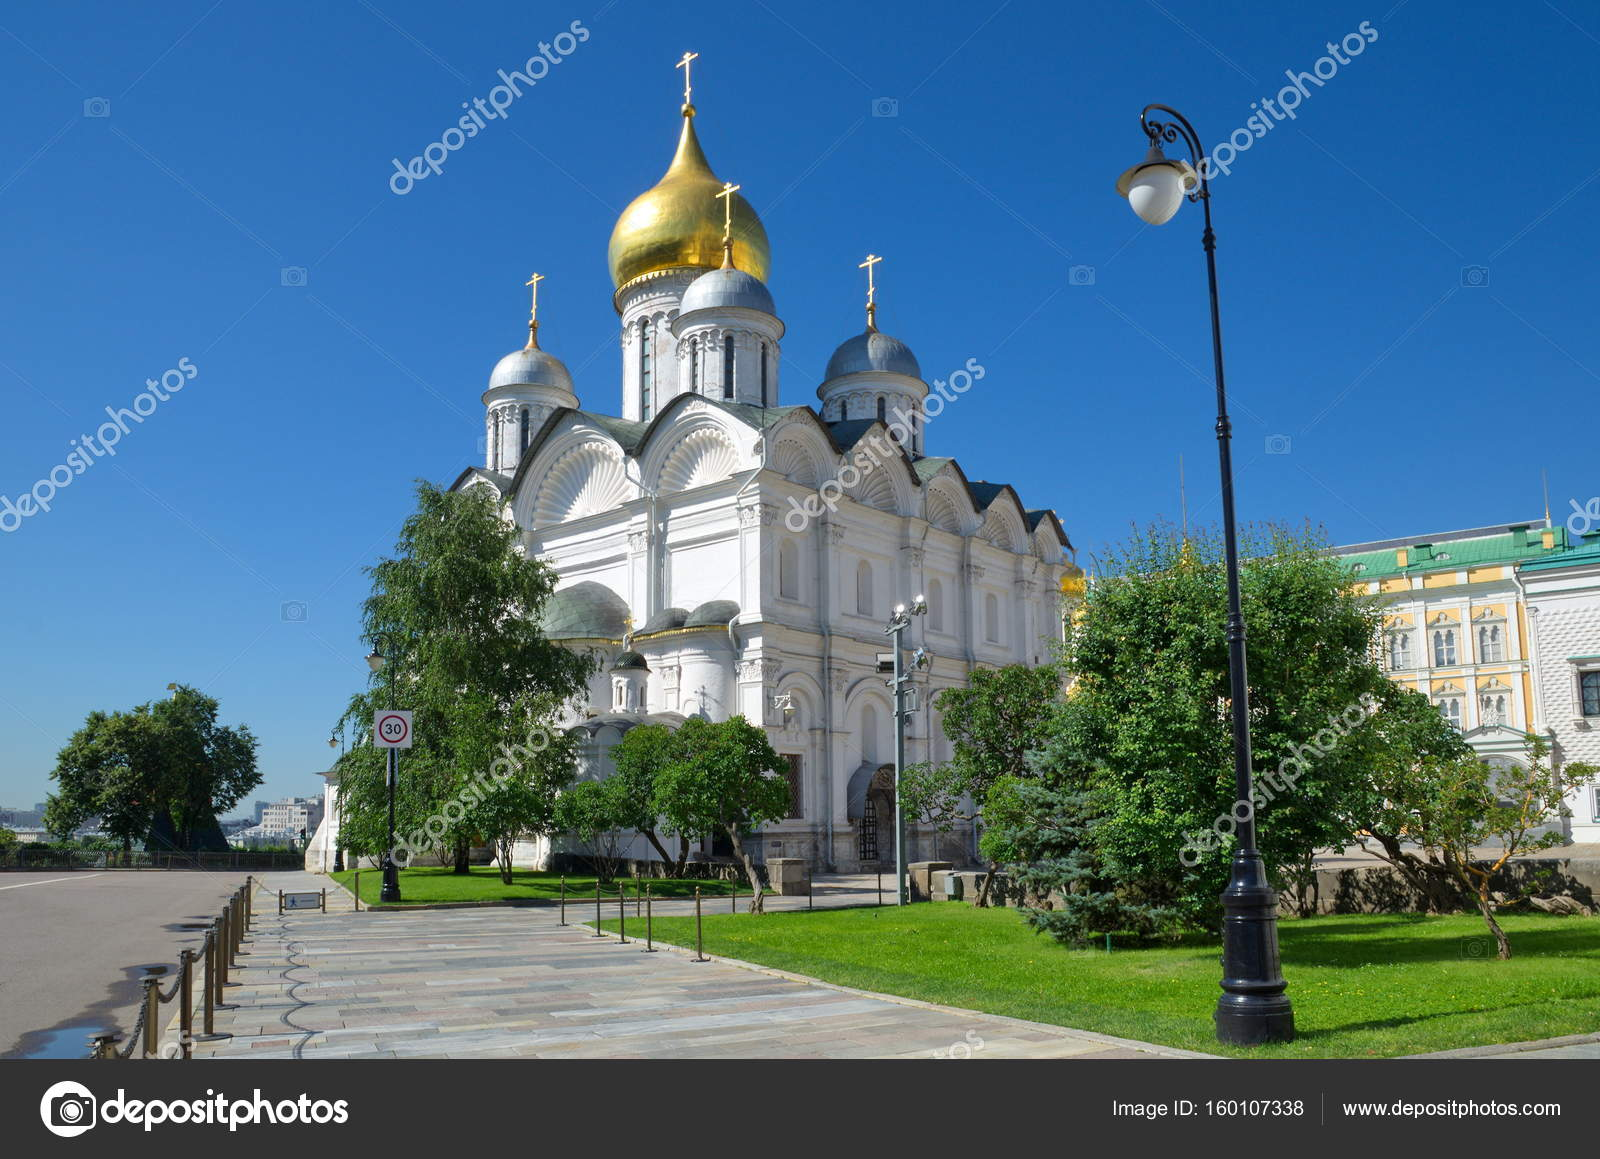 Archangel Cathedral of the Moscow Kremlin: description, architecture 47